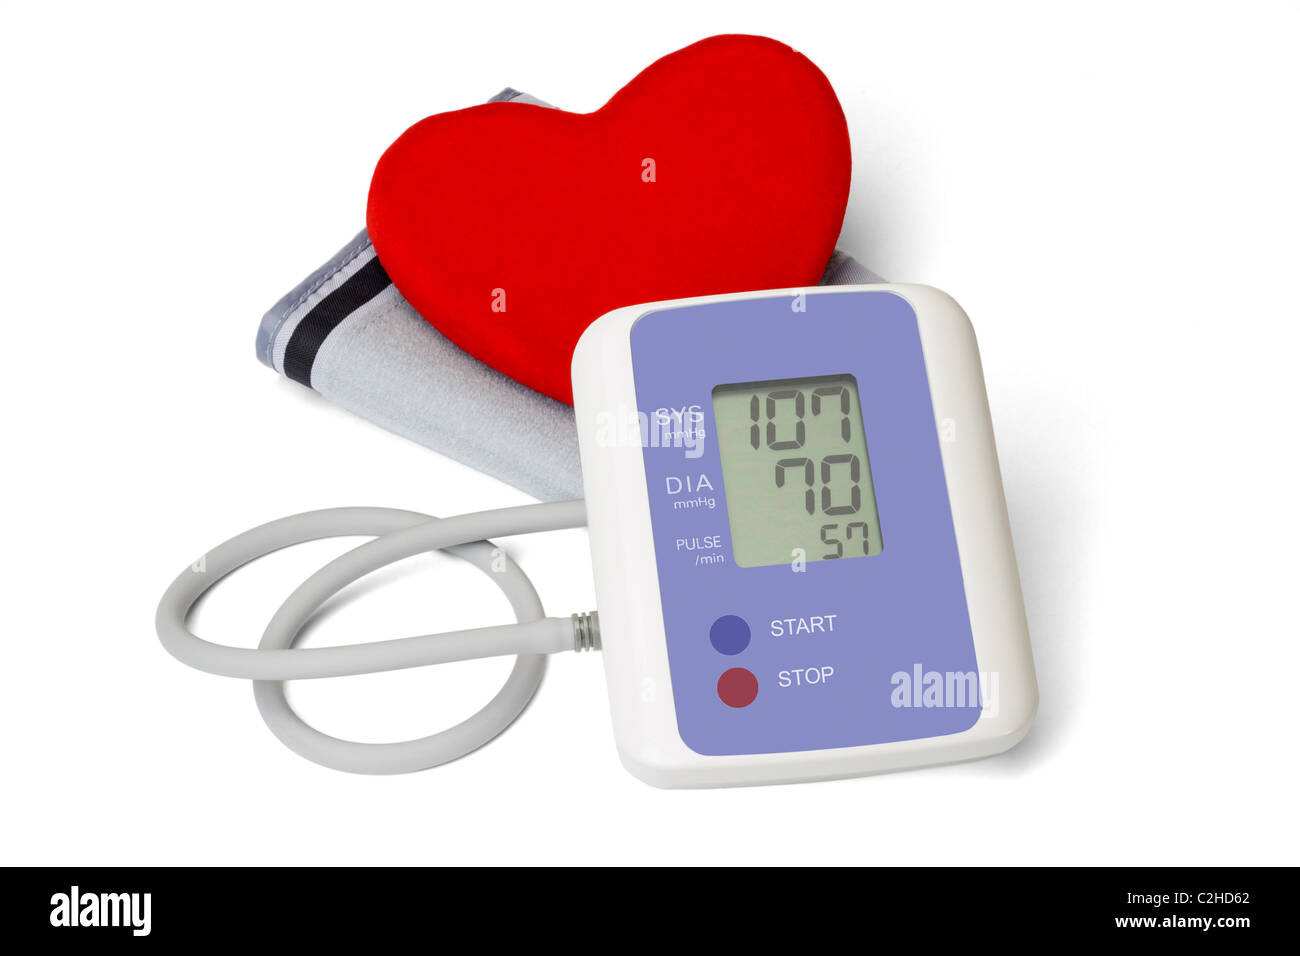 Digital blood pressure meter with love heart symbol on white background - Stock Image